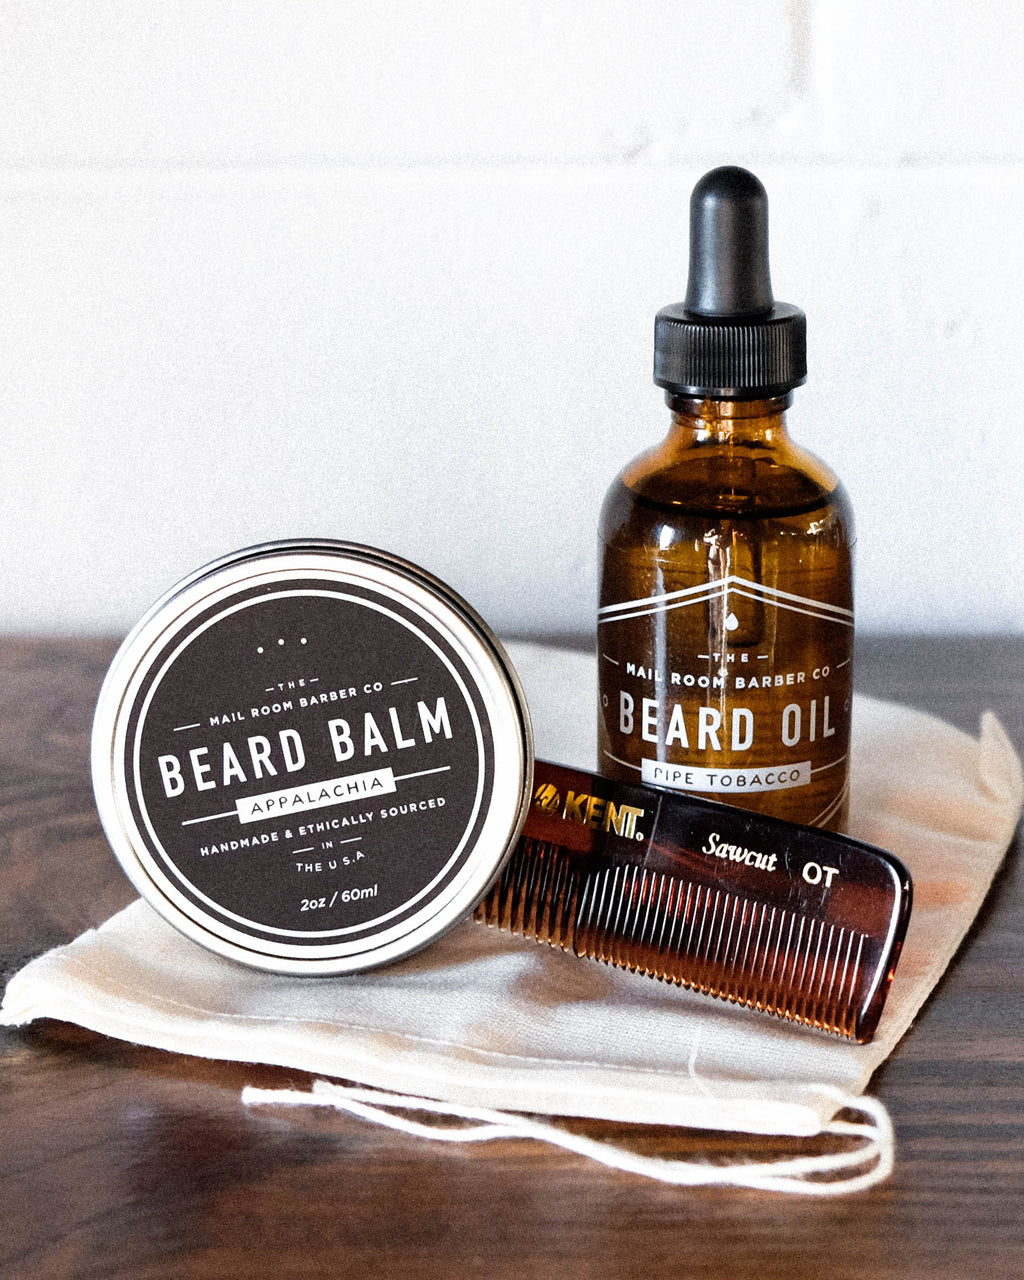 This beard kit is the perfect gift for husbands, bearded brethren, and any man that grows hair on his face. Included: Beard Balm, Beard Oil, an optional Kent FOT Comb, and a FREE Muslin Drawstring Bag. By Florence, SC sustainable brand and makers Mailroom Barber. Grooming products that are made using 100% ethically sourced ingredients and packaging.